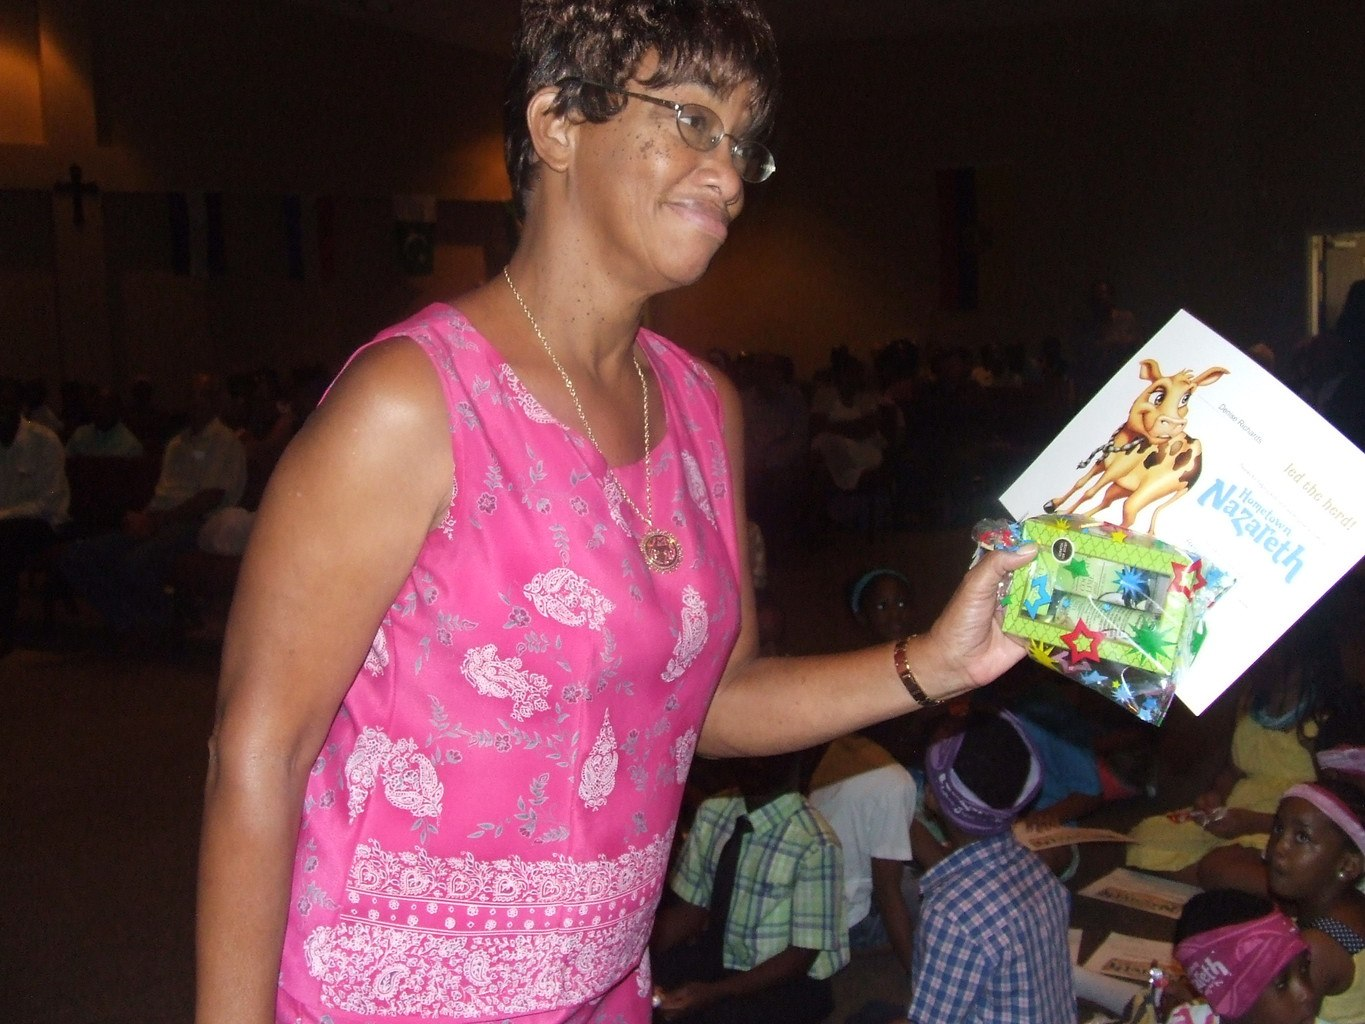 A lady smiling with her gift in her left hand